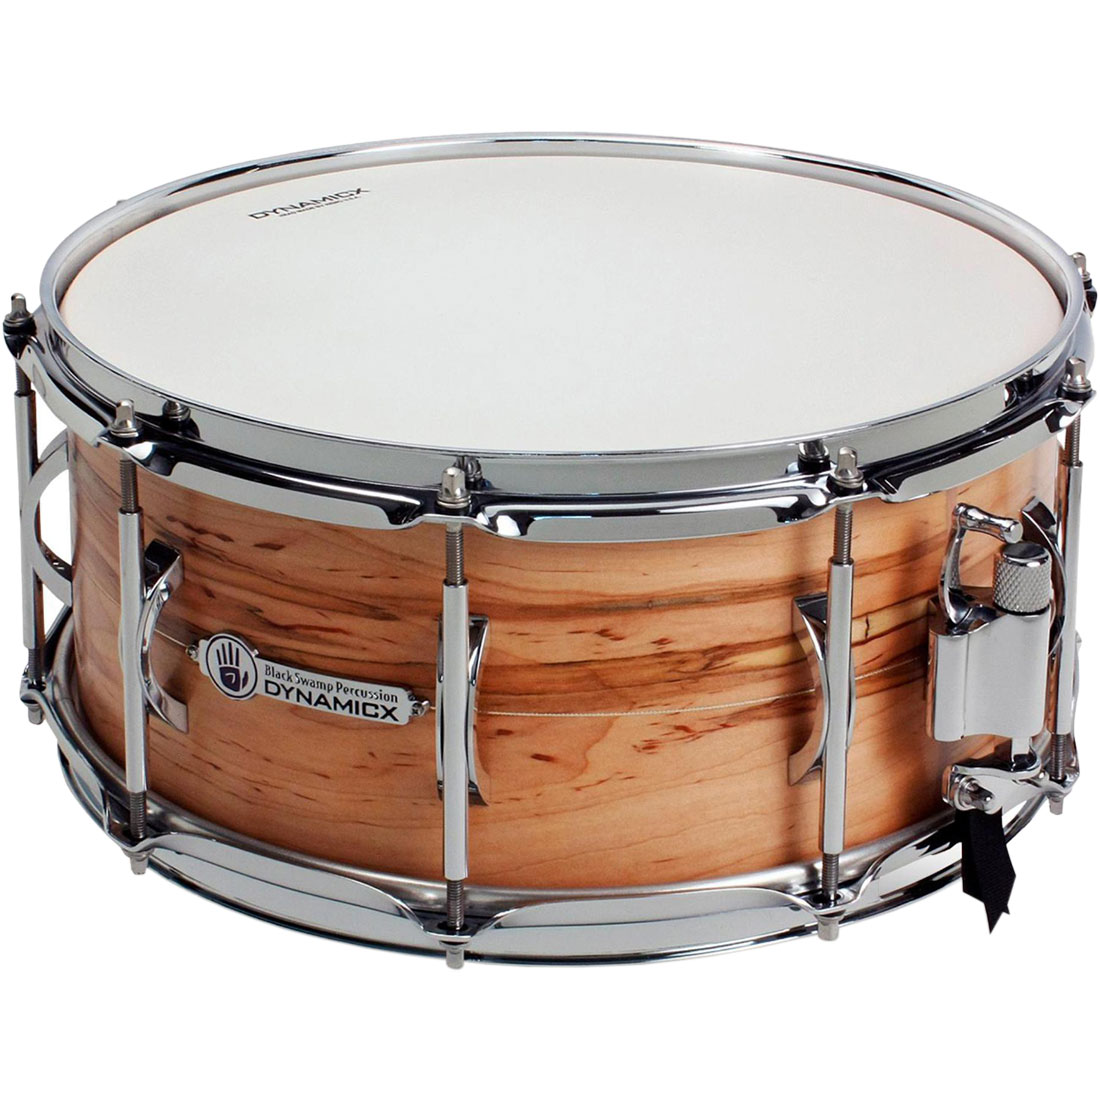 "Dynamicx 5.5"" x 14"" Live! Series Unibody Solid Shell Ambrosia Maple Snare Drum with Sterling Silver Inlay"